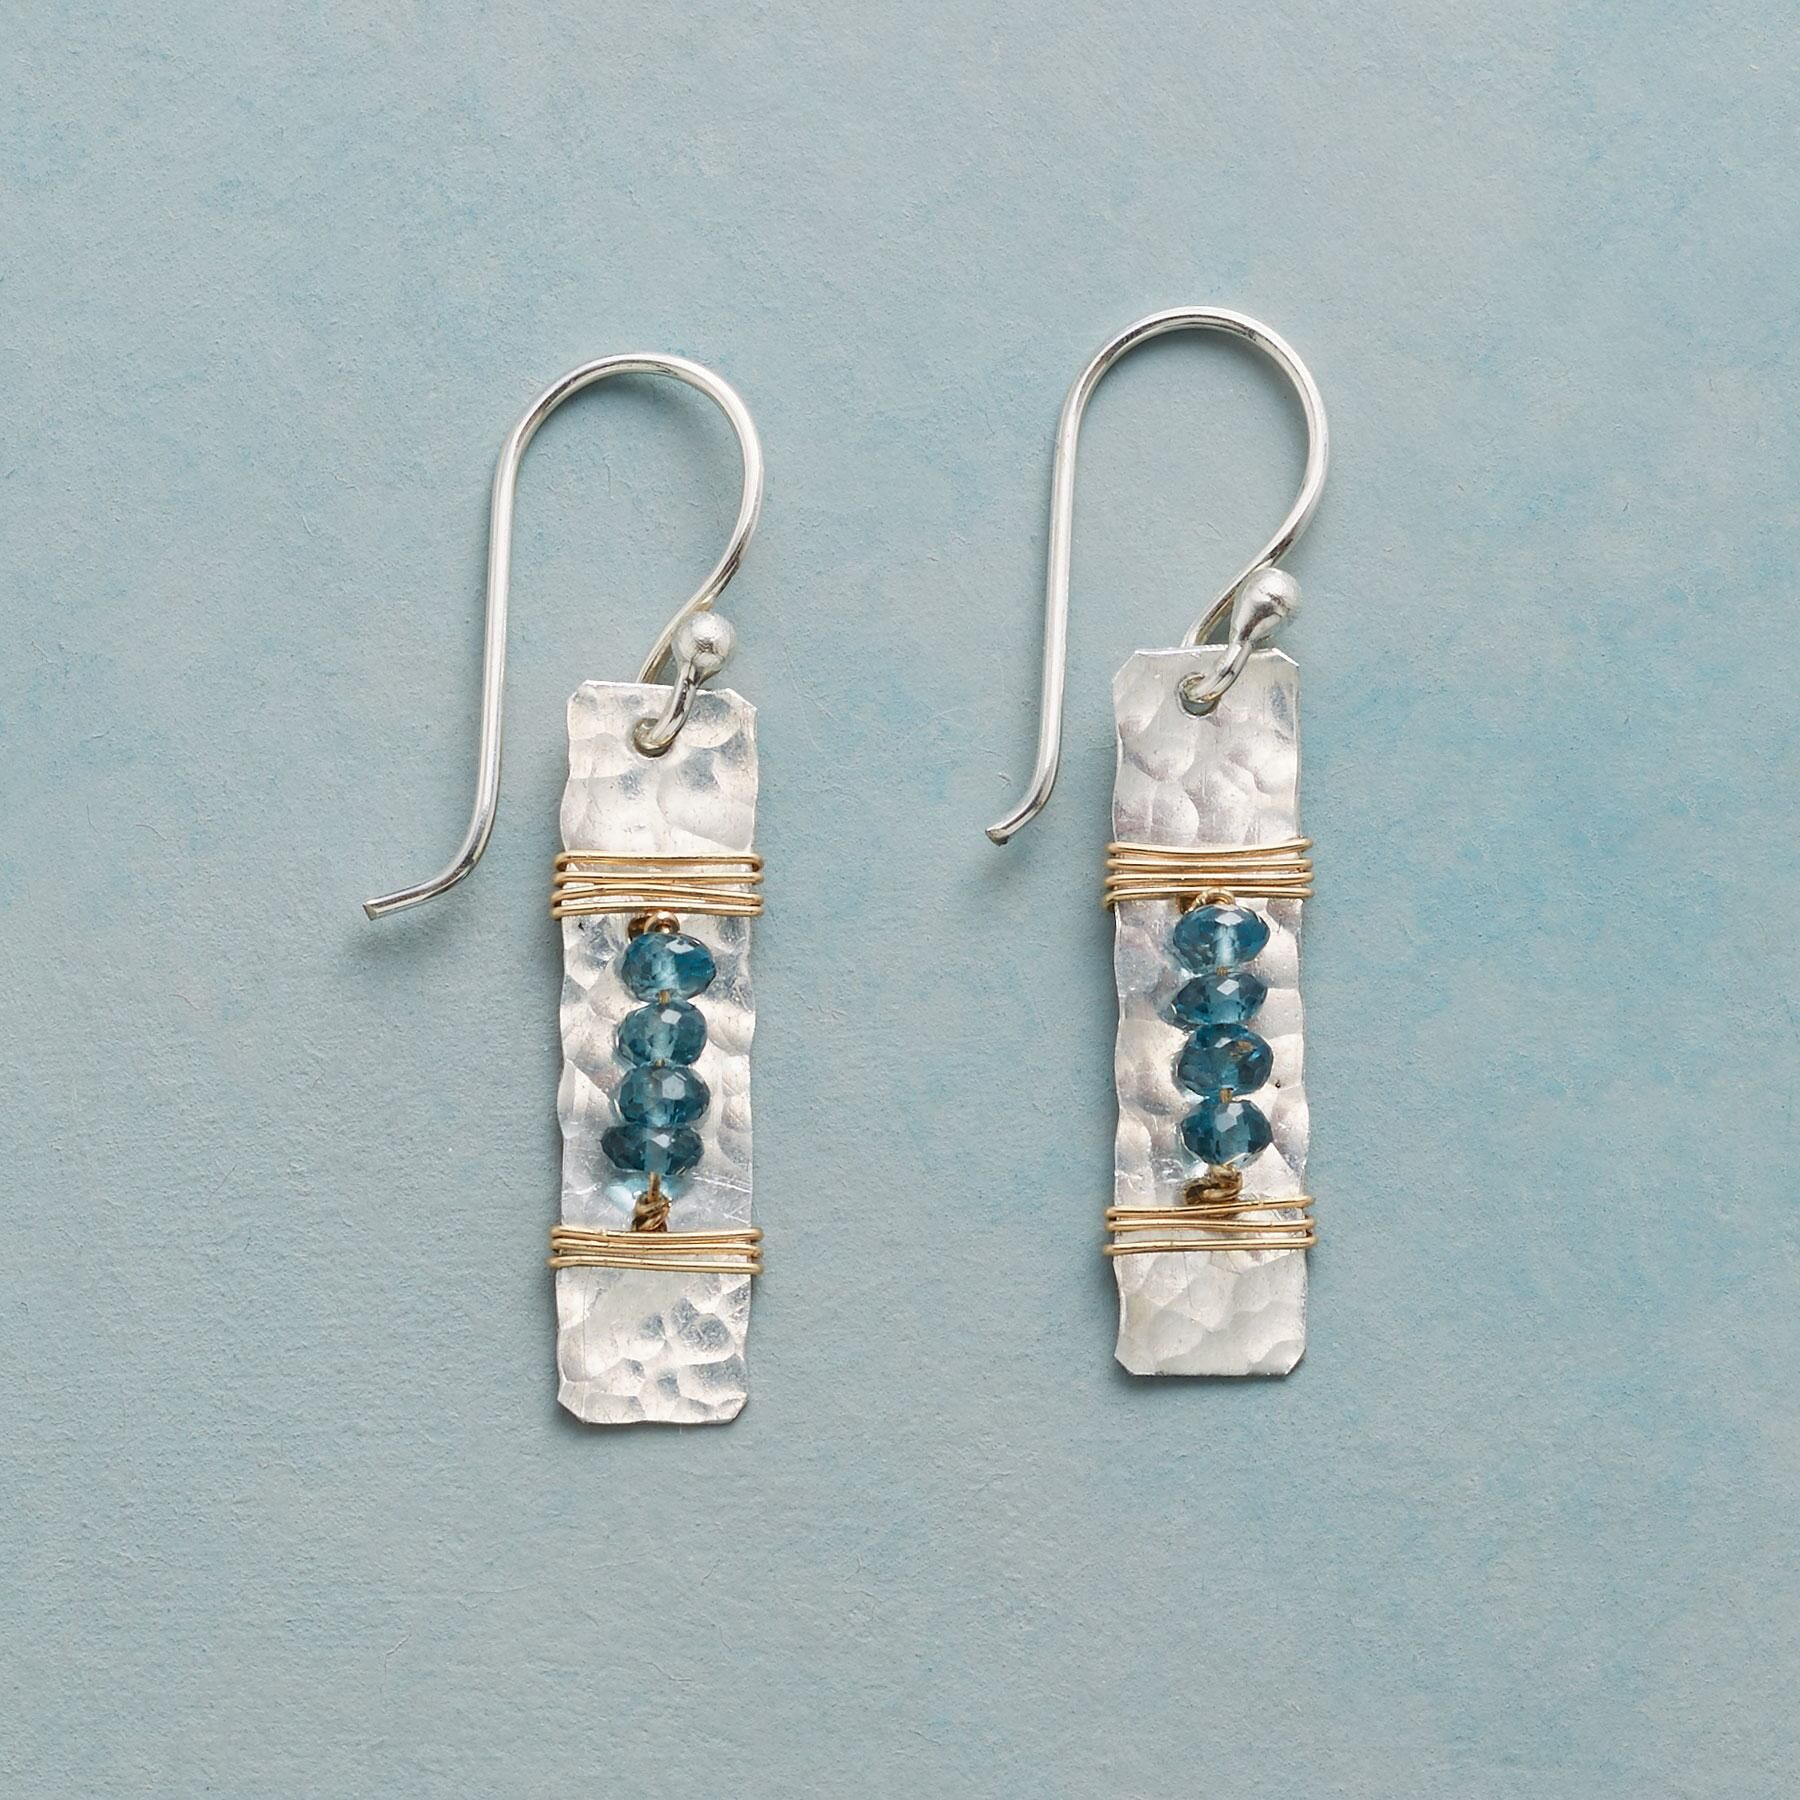 THE BEADS BETWEEN EARRINGS -- London blue topaz align between coils ...